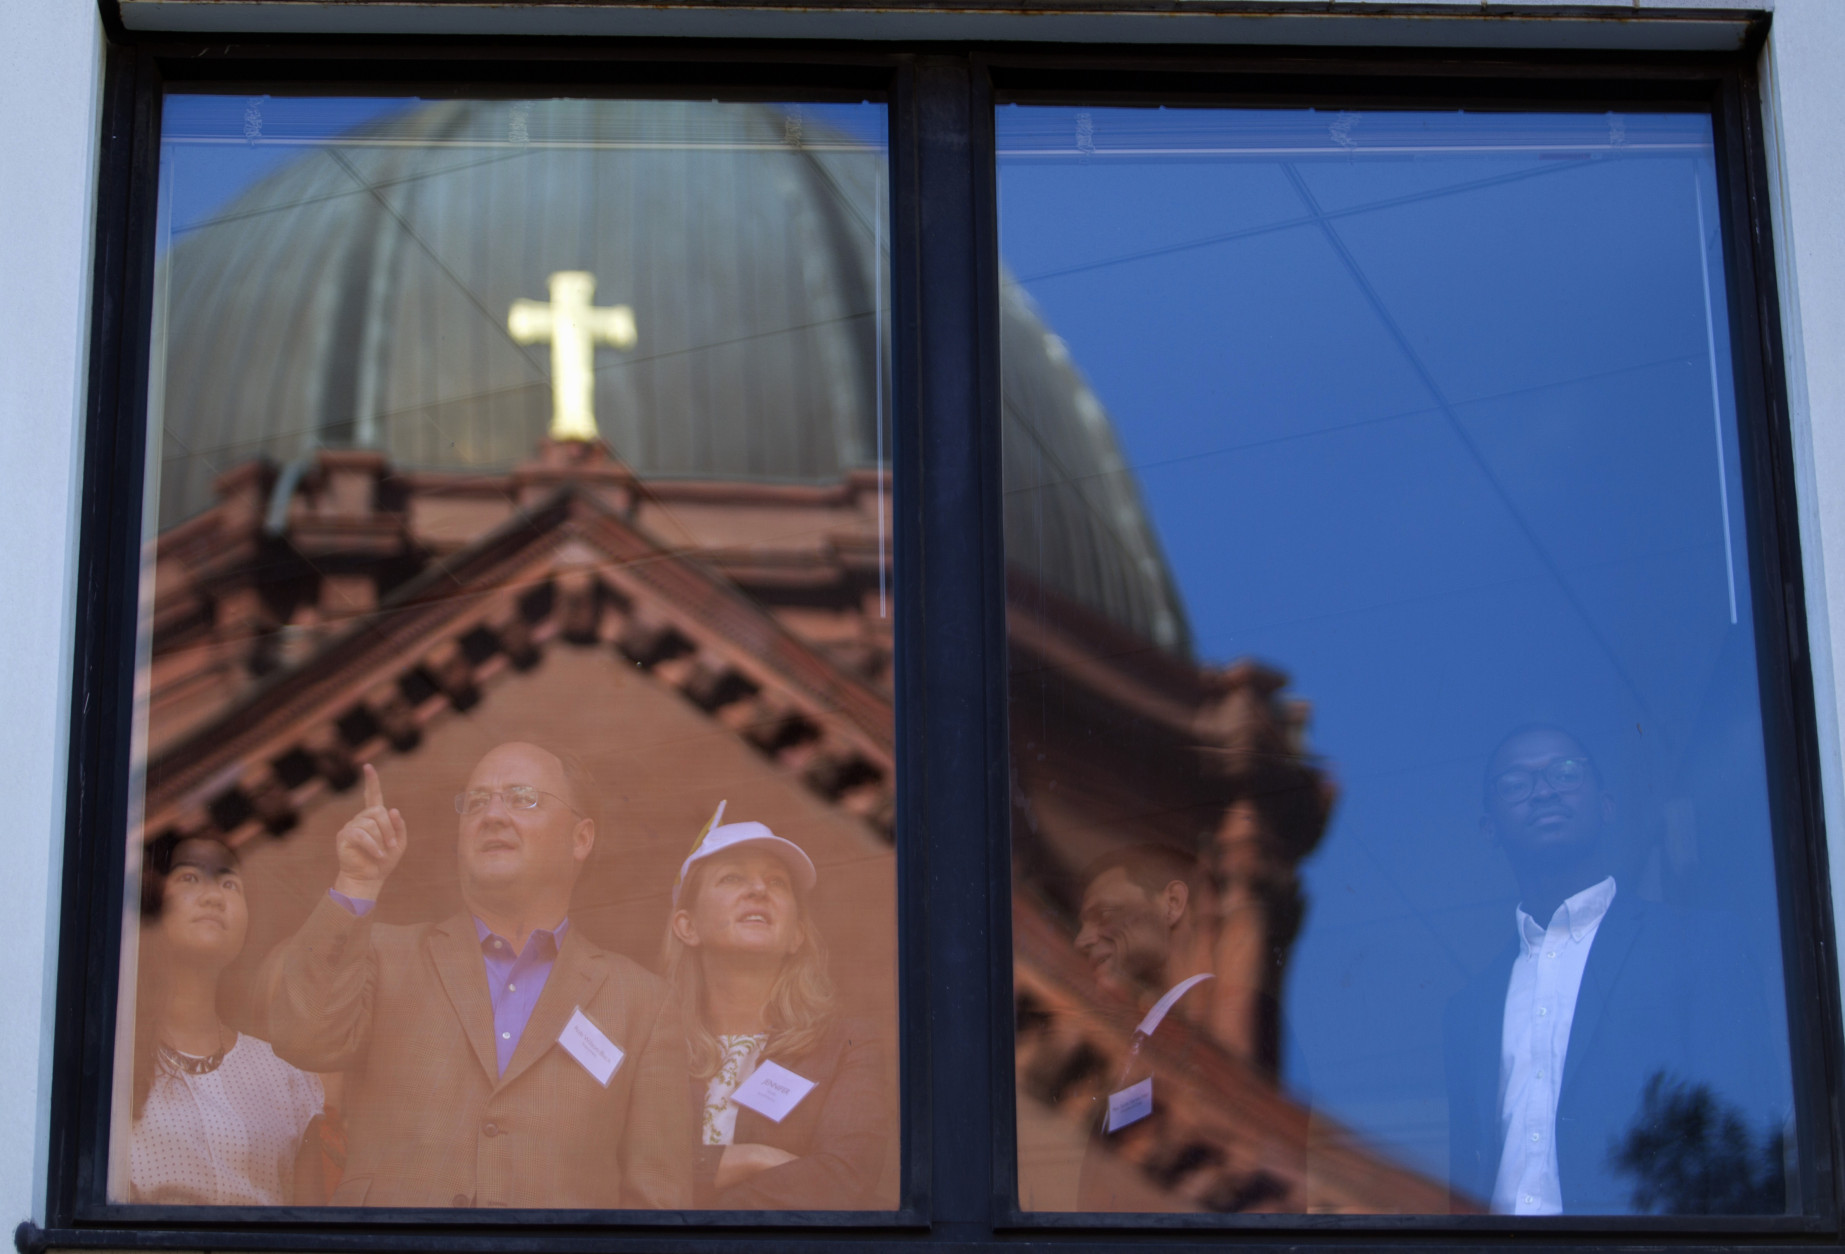 St. Mathews Cathedral is reflected in a nearby building as onlookers wait for Pope Francis to arrive for midday prayer service at the cathedral in Washington, Wednesday, Sept. 23, 2015. ( AP Photo/Jose Luis Magana)St. Mathews Cathedral